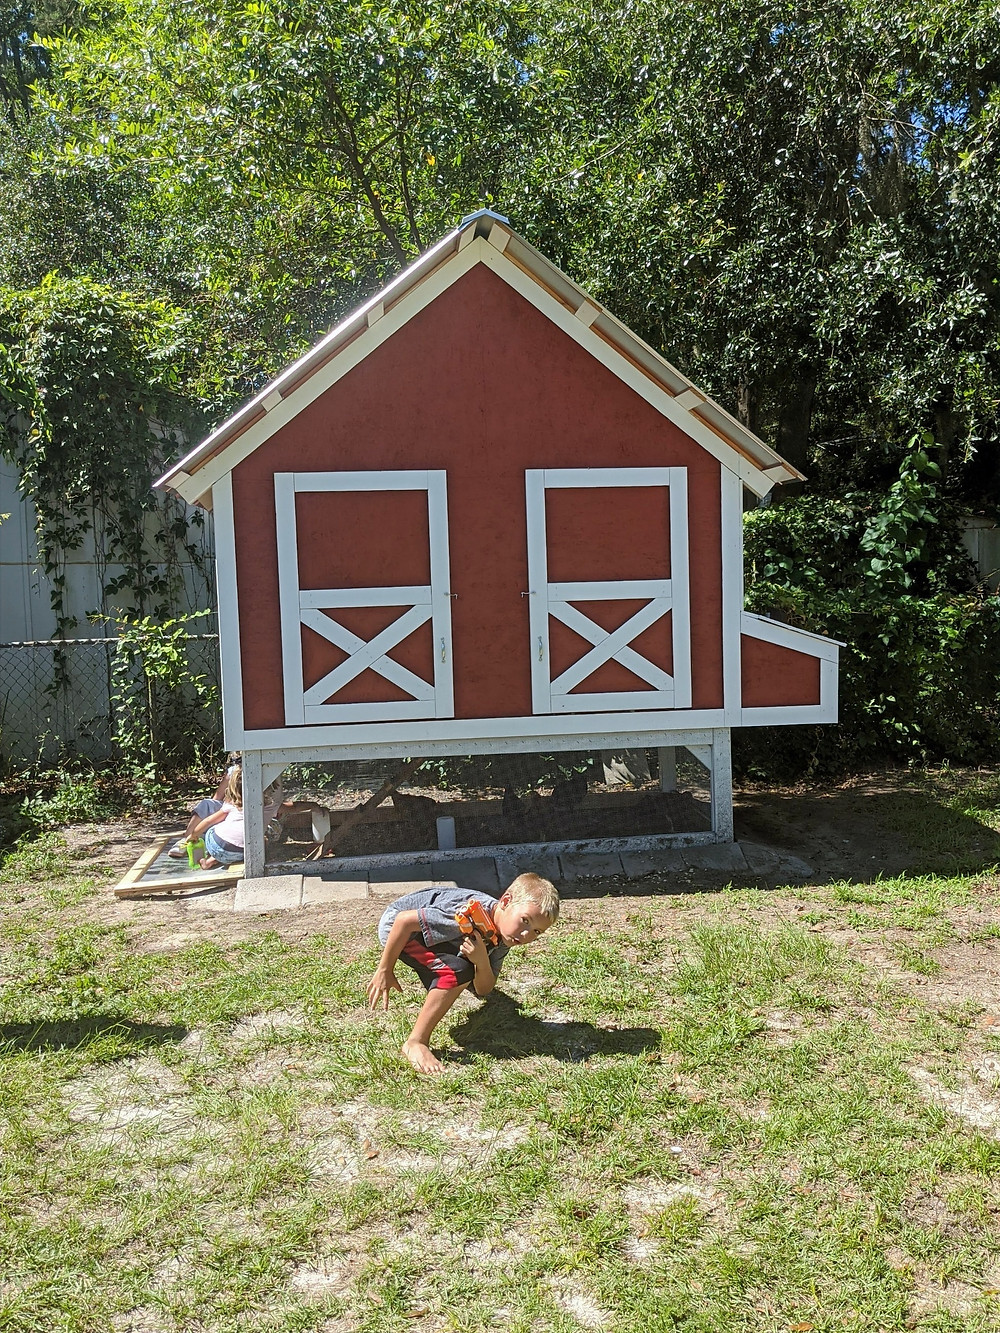 Young boy ducking in front of red chicken coop